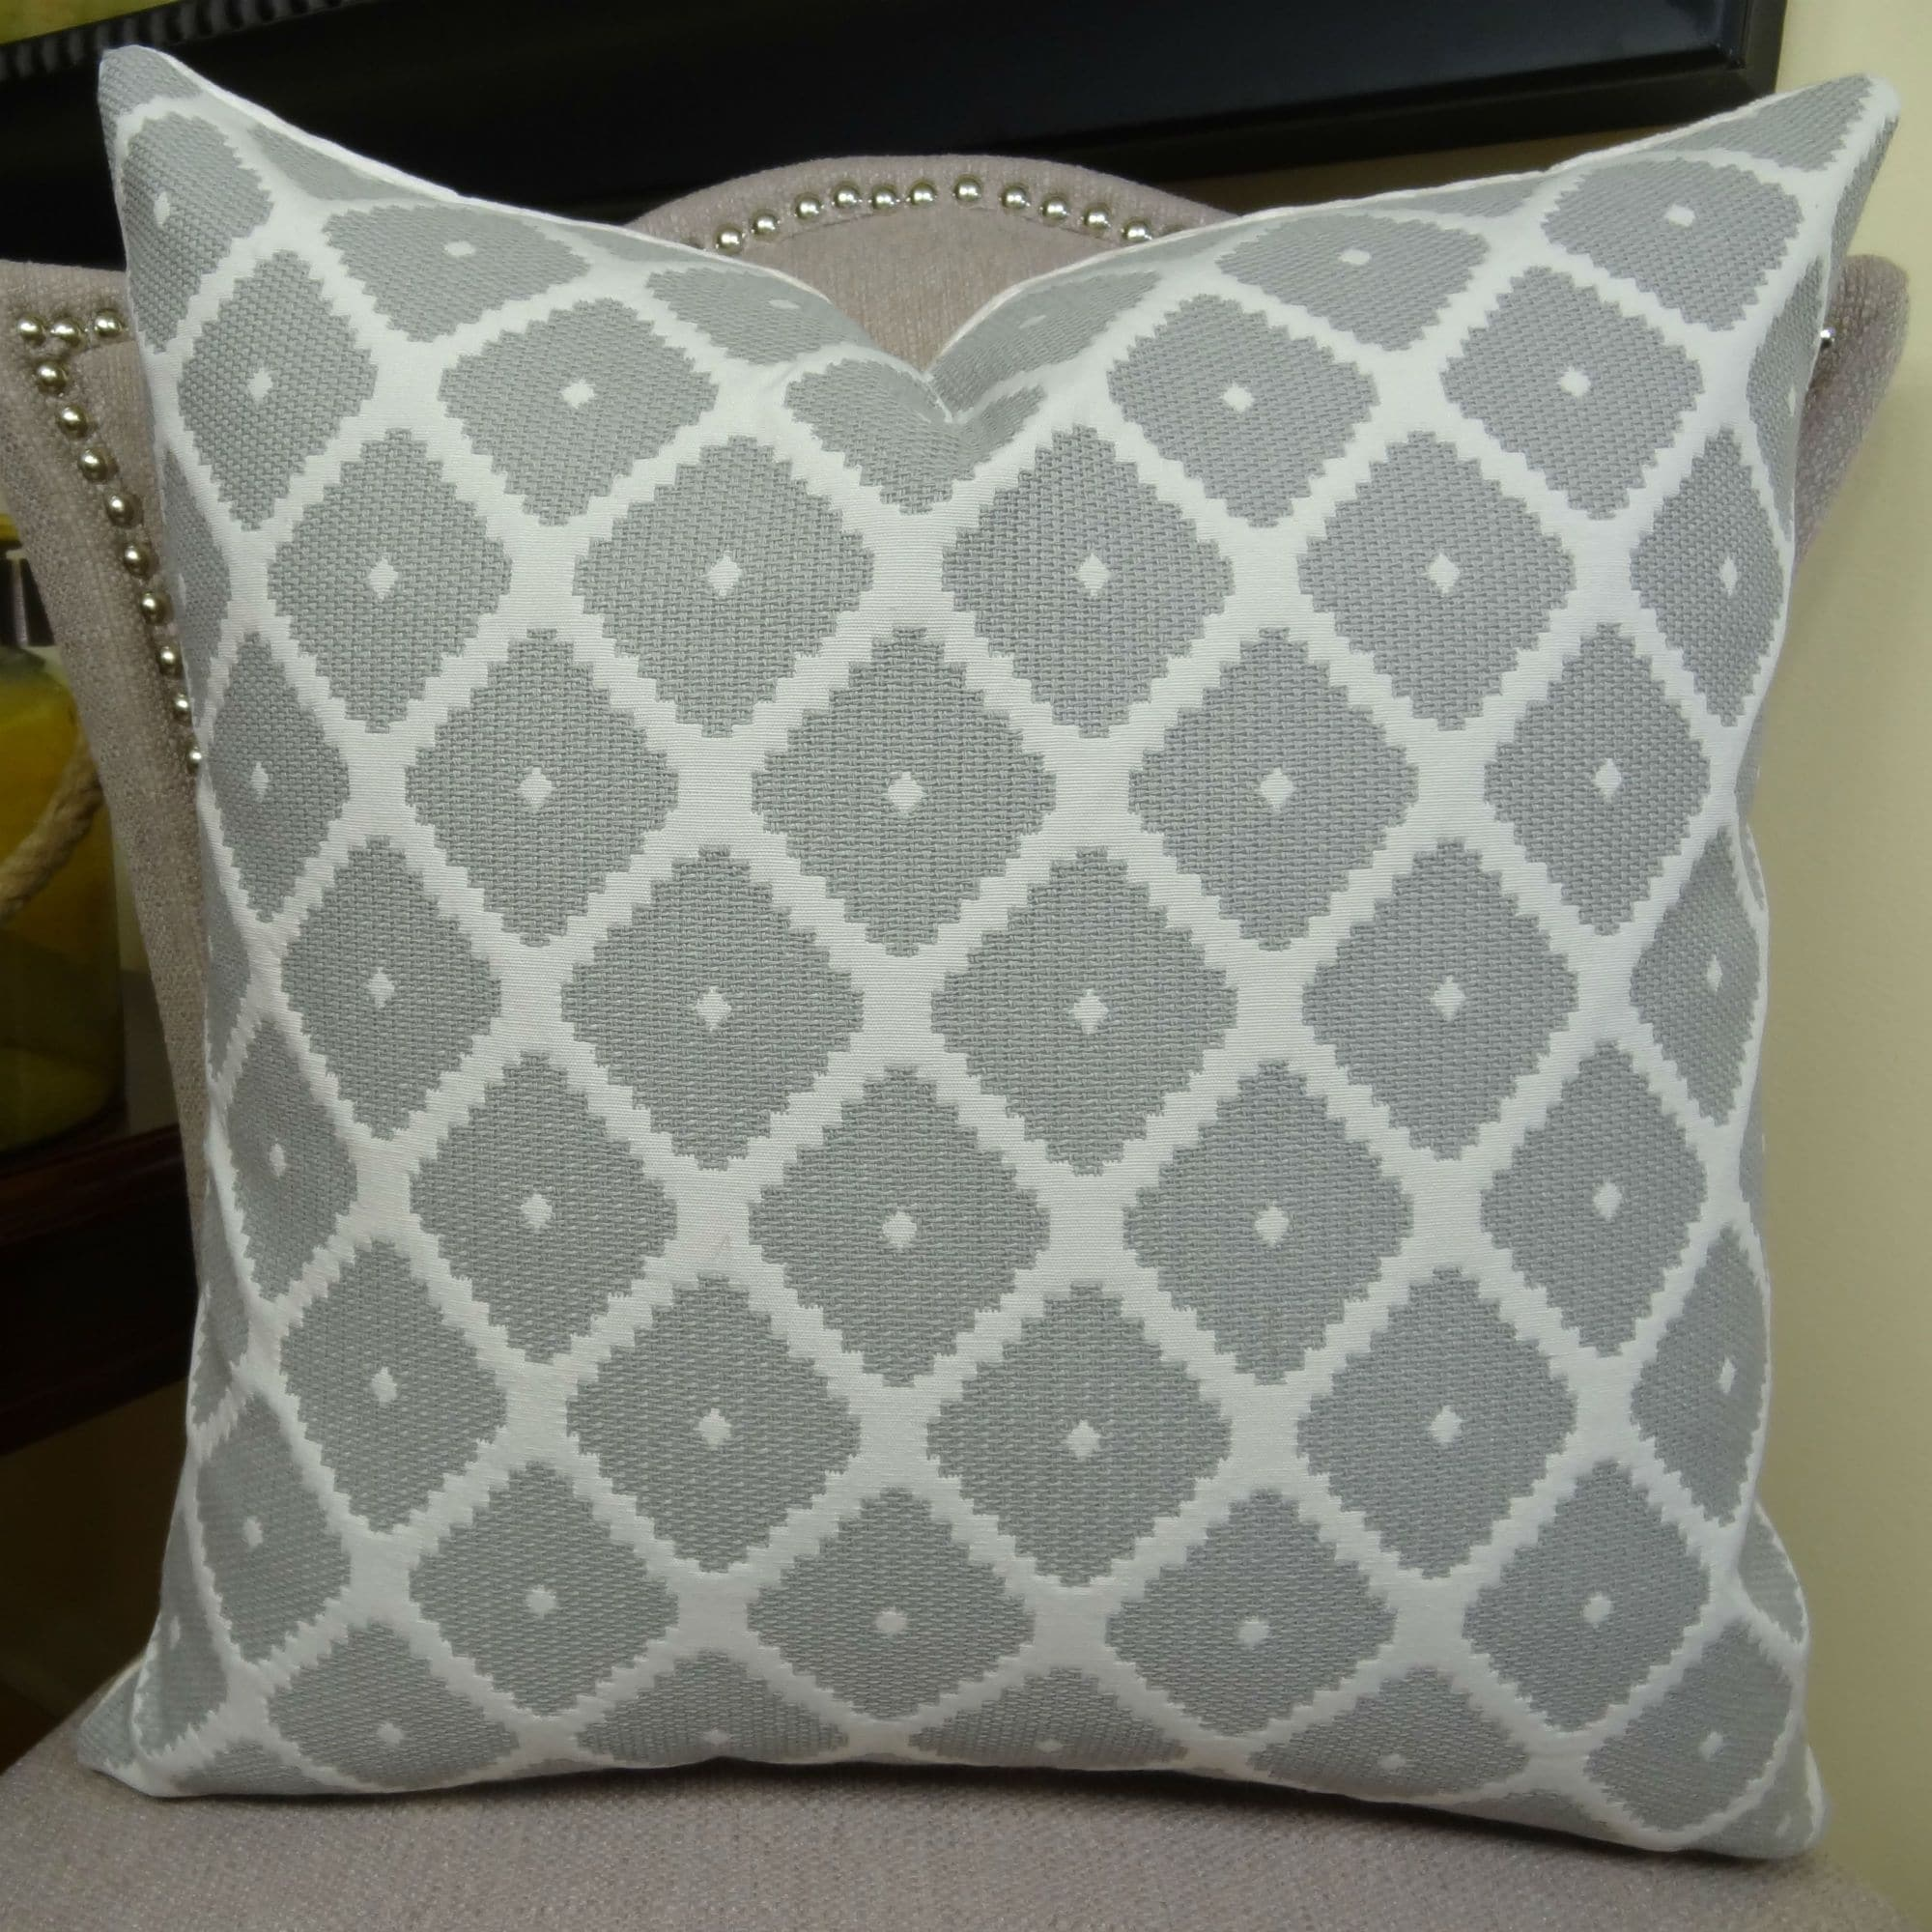 Thomas Collection Gray White Geometric Designer Throw Pillow, Handmade in USA, 11196D (Large - Square - double sided 20 x 20)